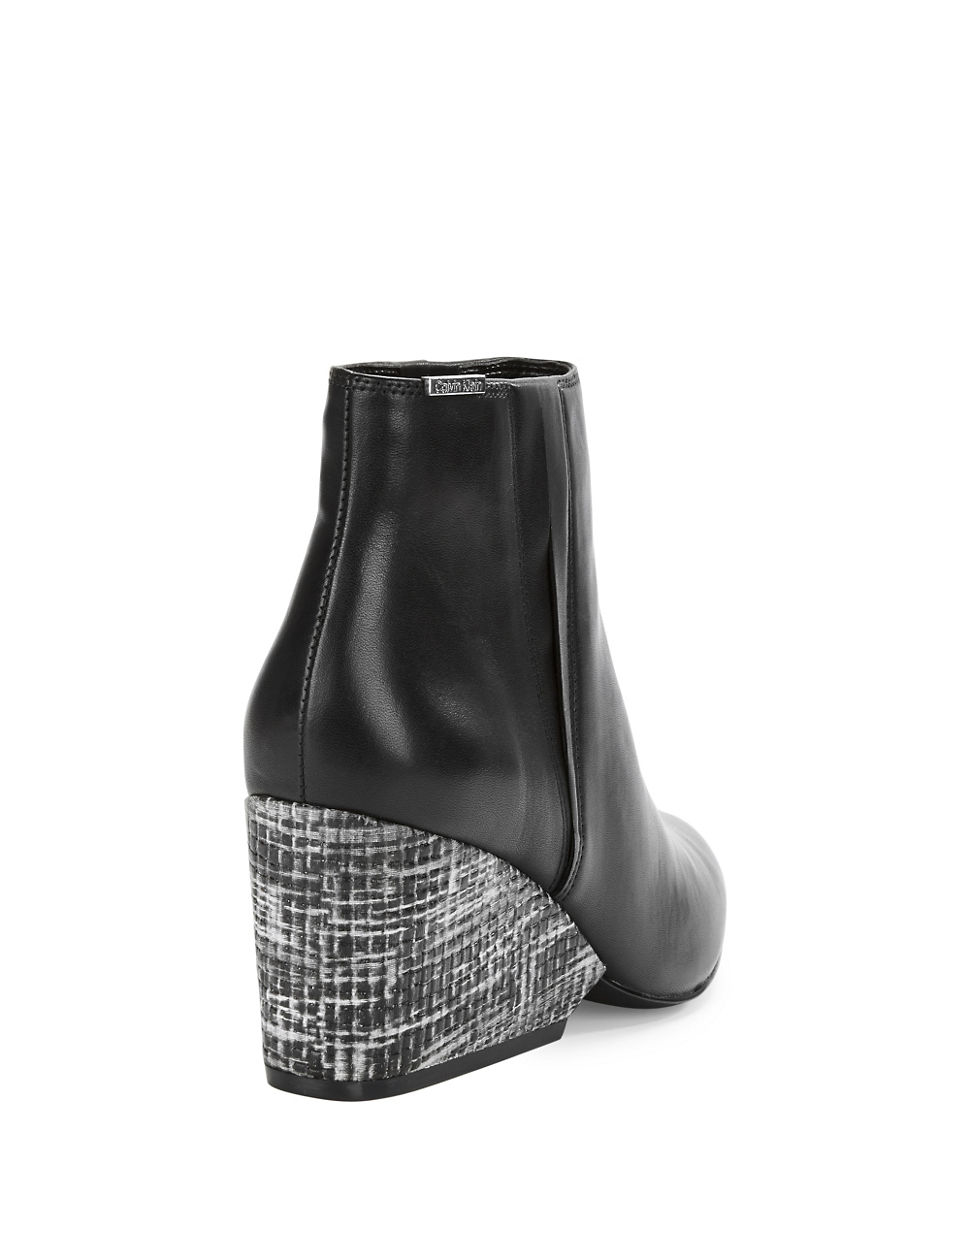 7332d3268fc Calvin Klein Celine Leather Ankle Boots in Black - Lyst